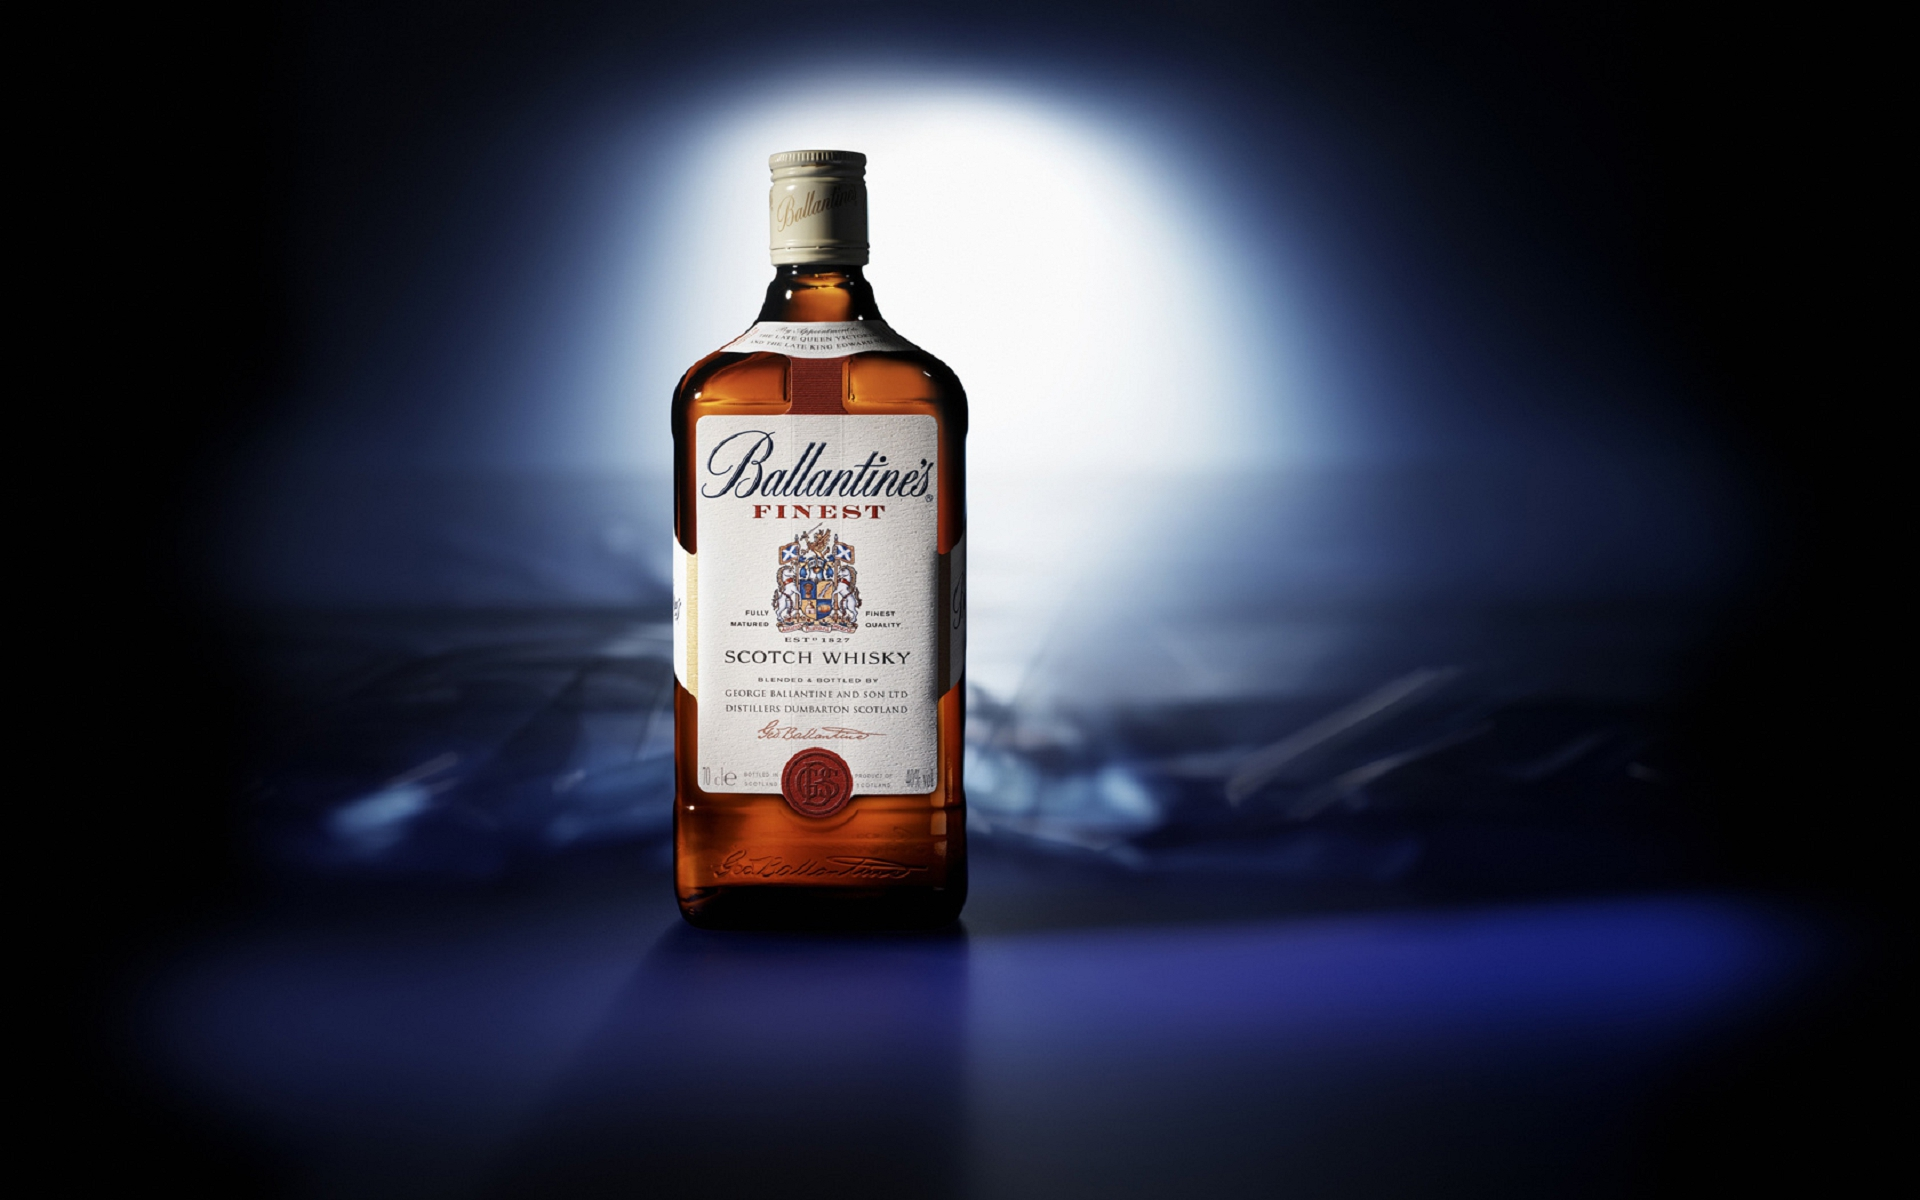 ballantines wallpapers images photos pictures backgrounds